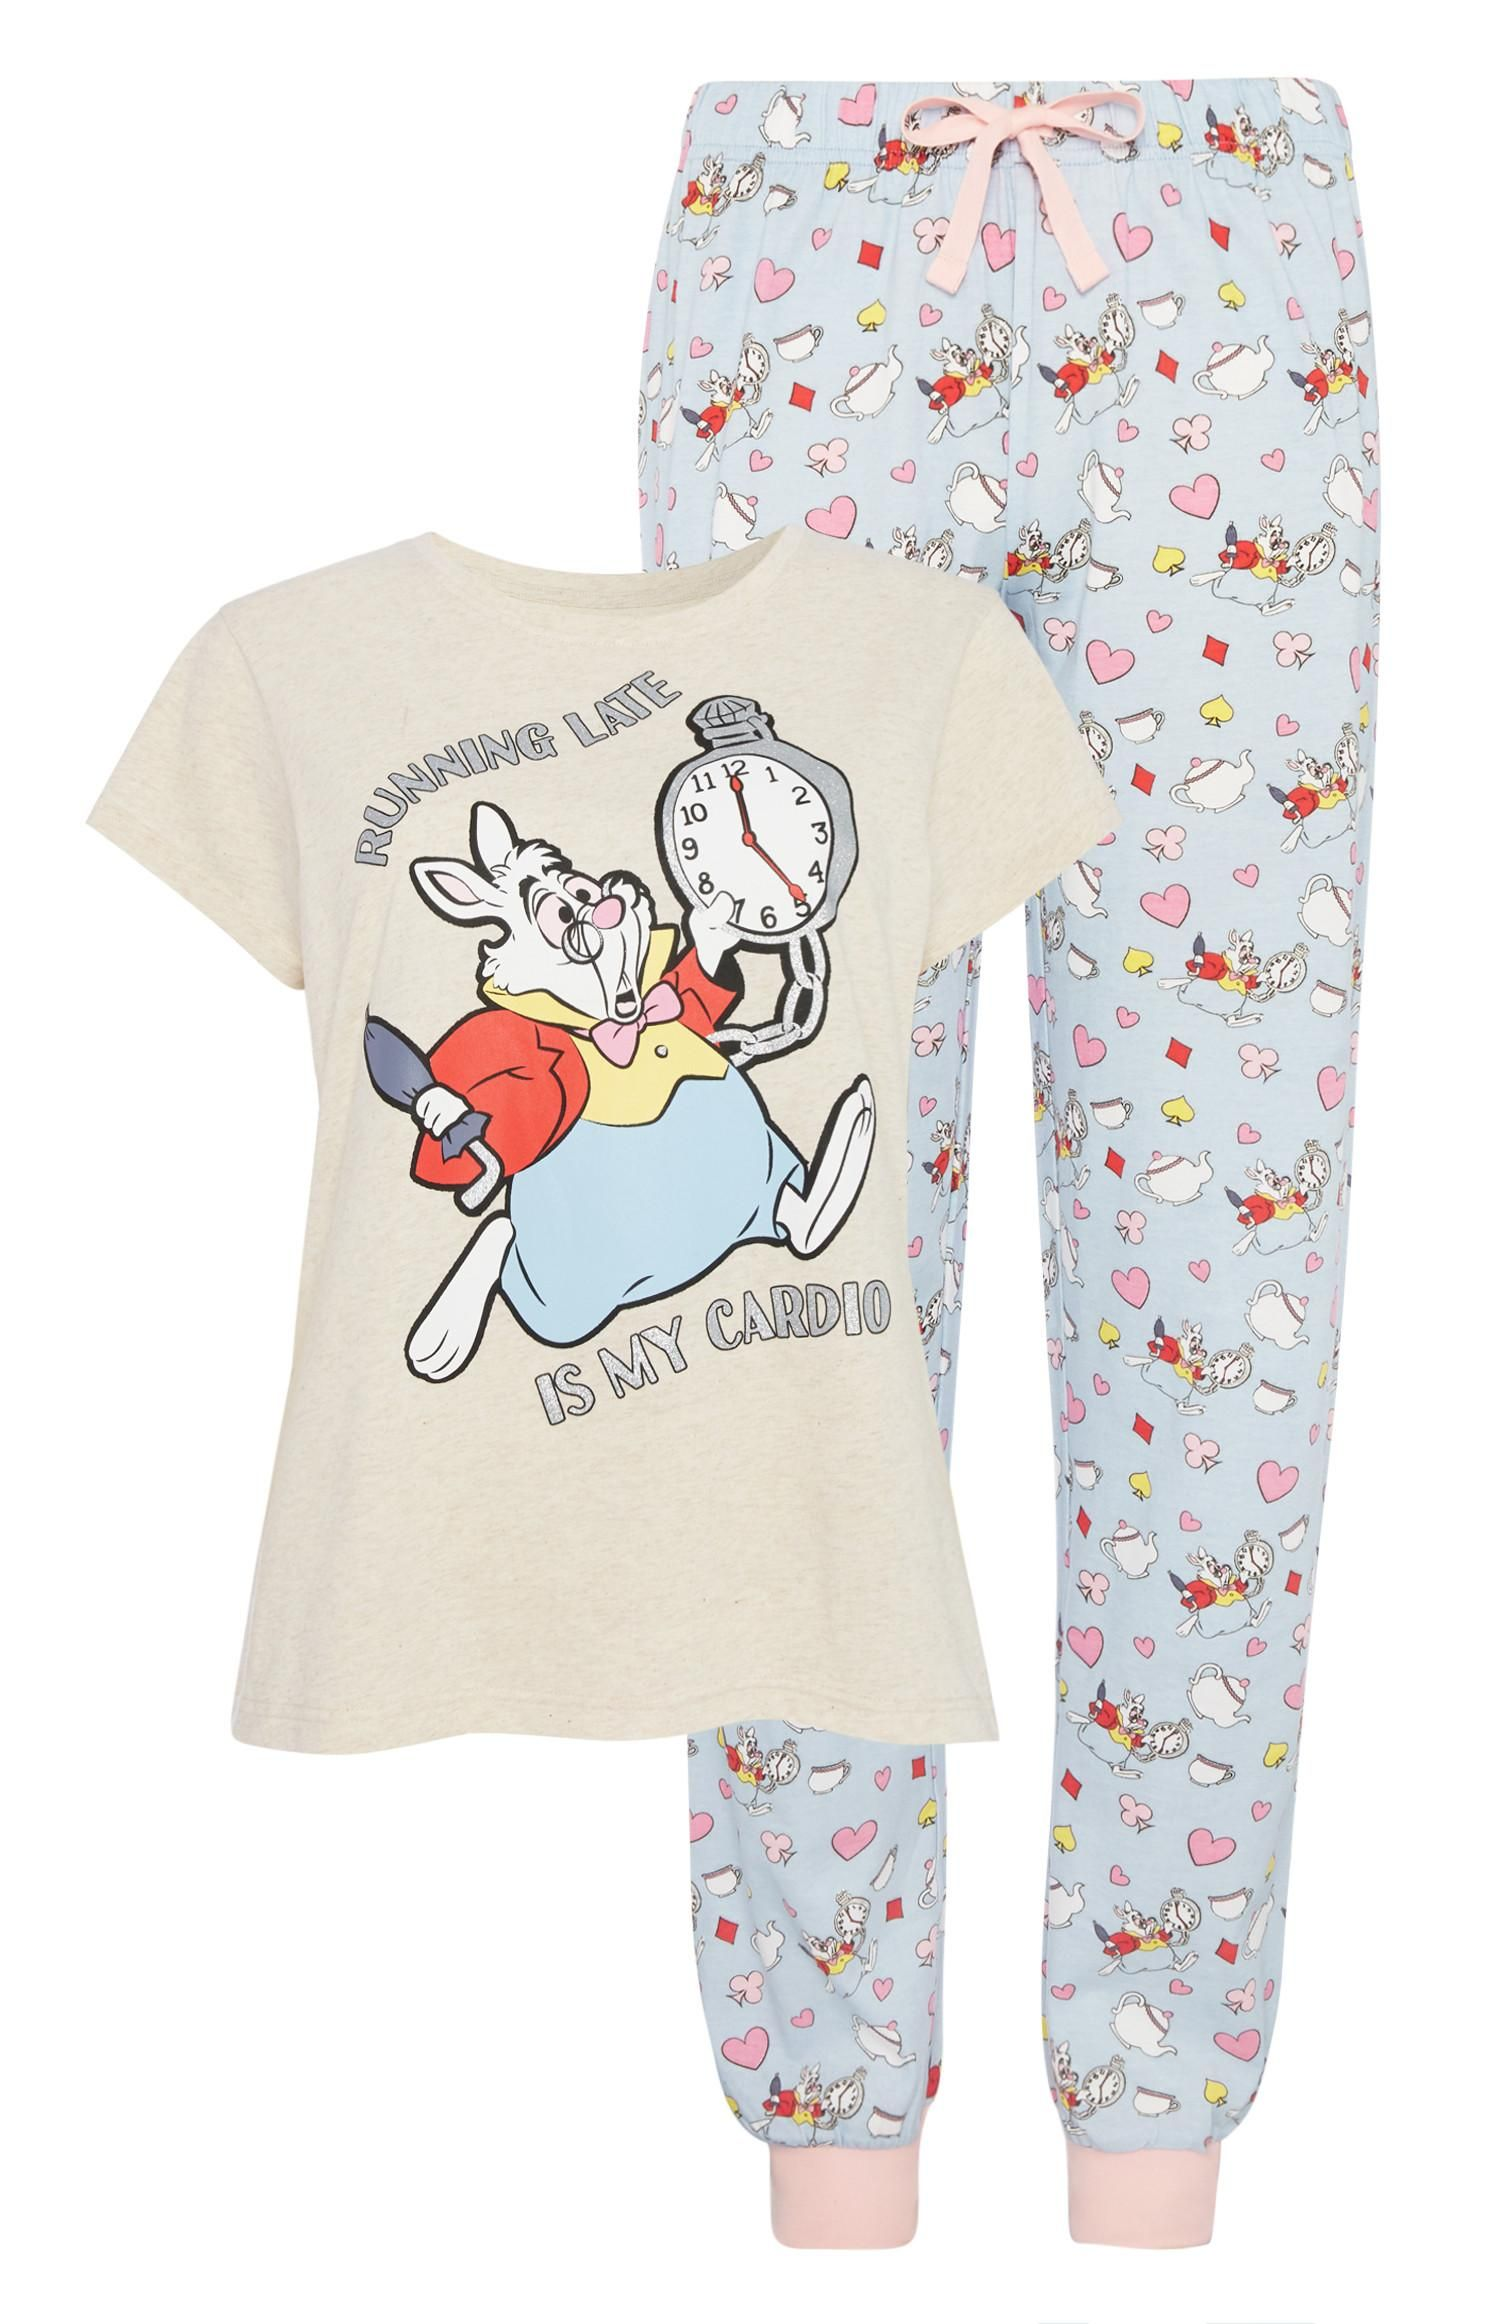 disney gifts for adults uk